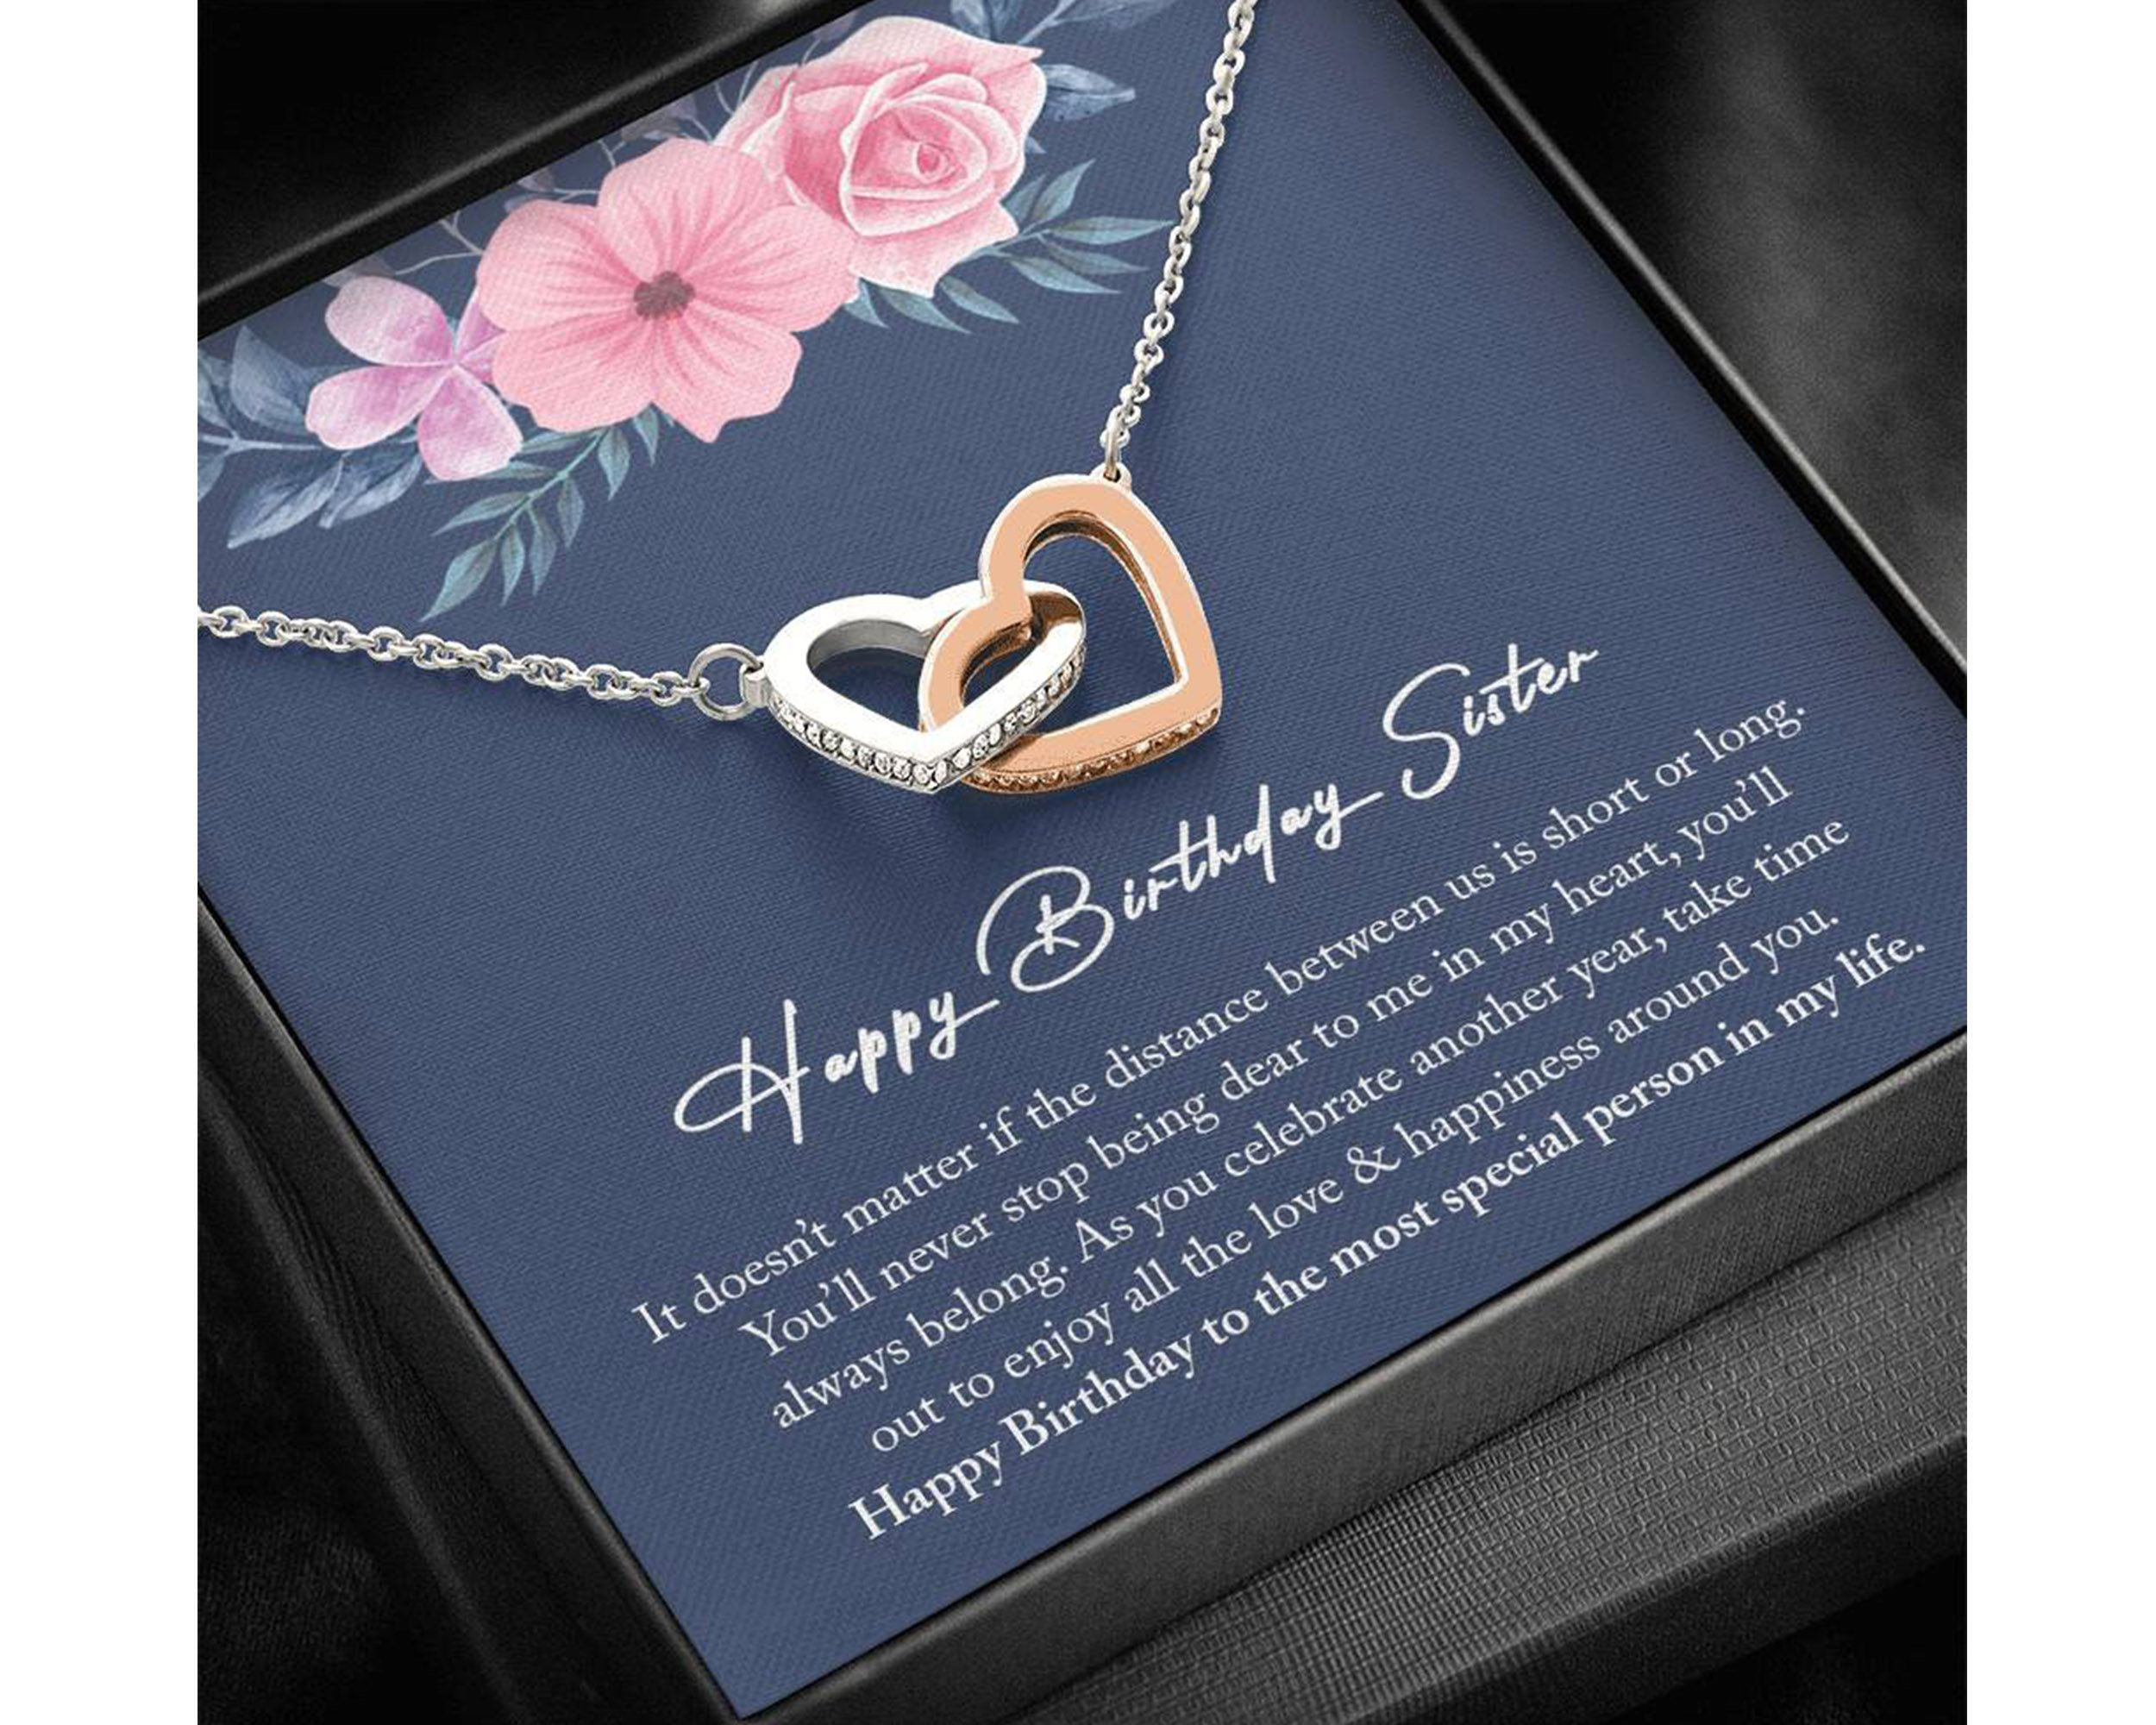 Colorful thoughtful present sister love jewelry for daughter Marigold enamel heart pendant necklace  valentine day gift for best friend